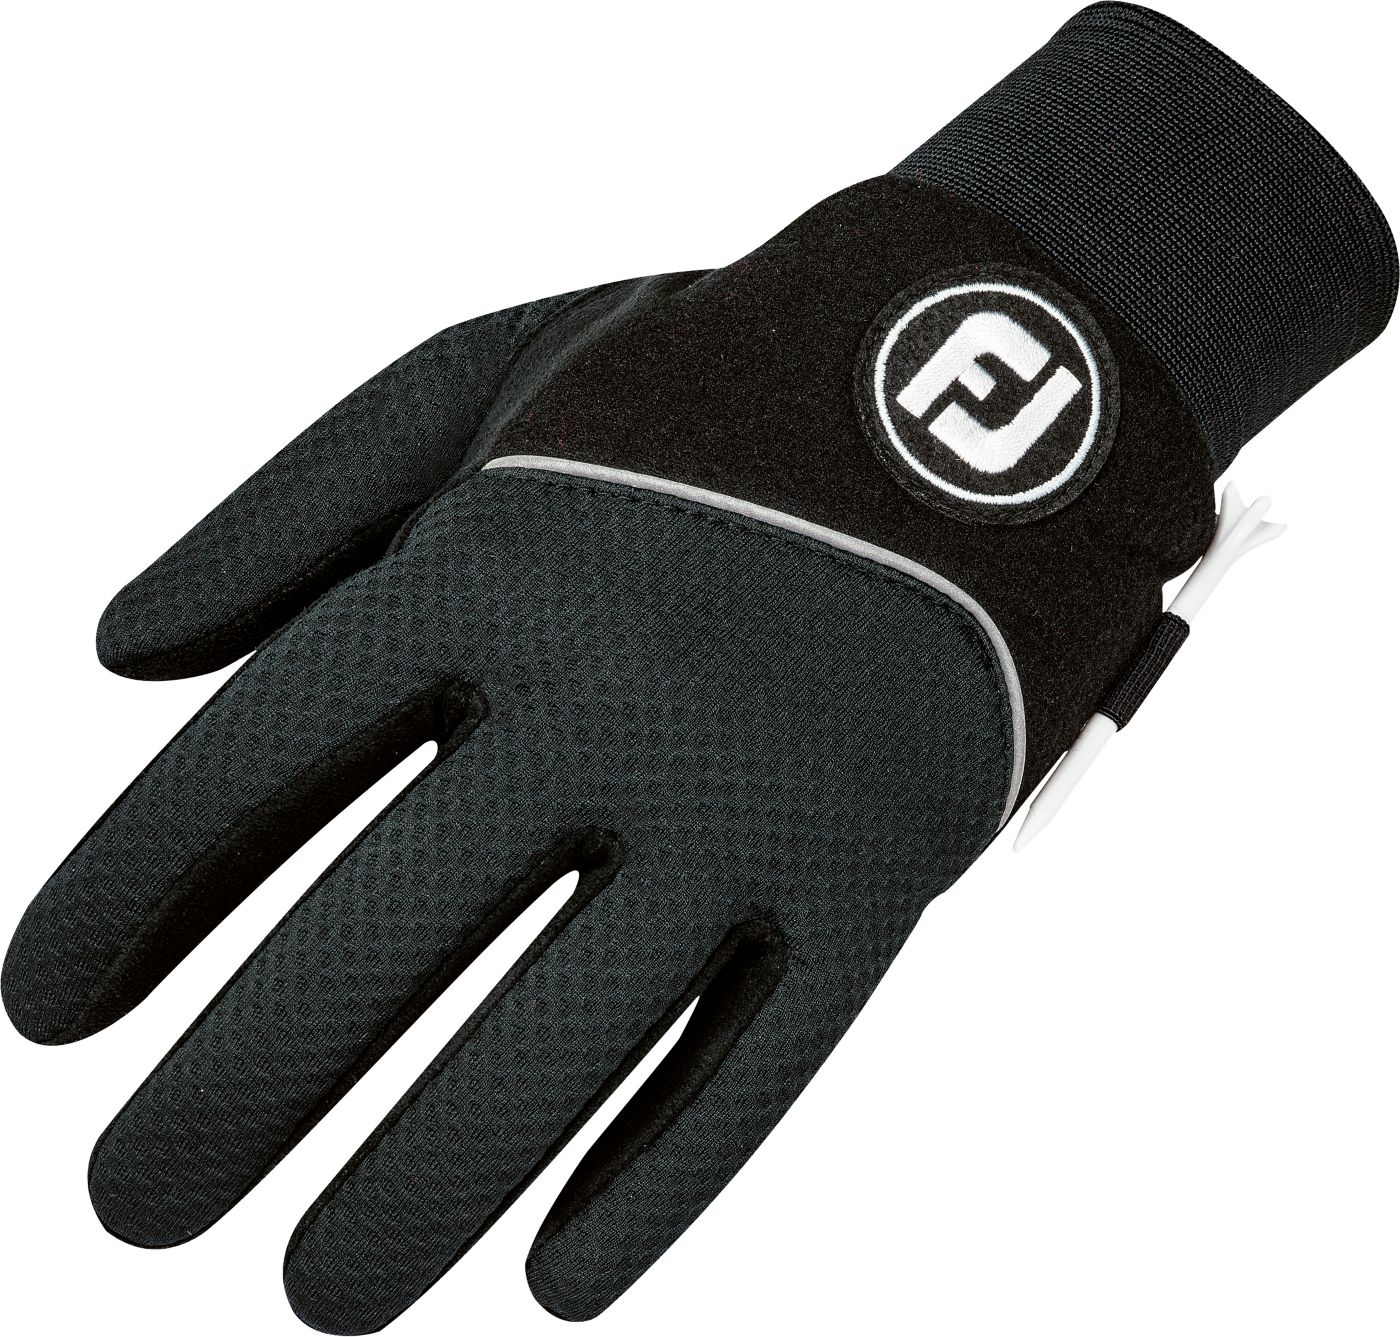 FootJoy Men's WinterSof Golf Gloves - Pair